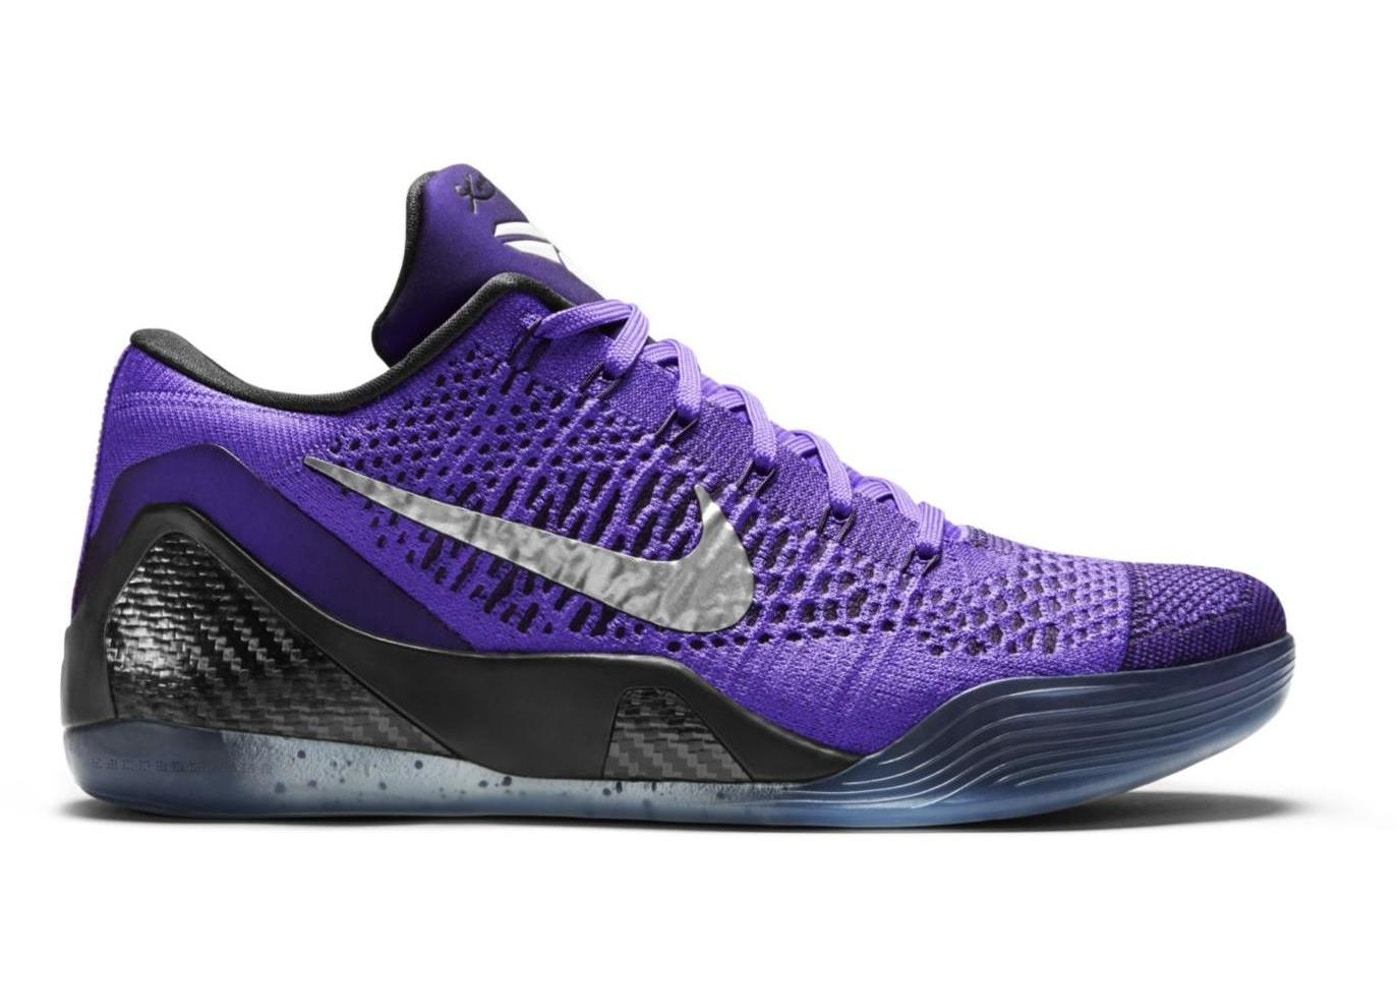 new arrival dfa89 b4a9f Kobe 9 Elite Low Michael Jackson Moonwalker - 639045-515